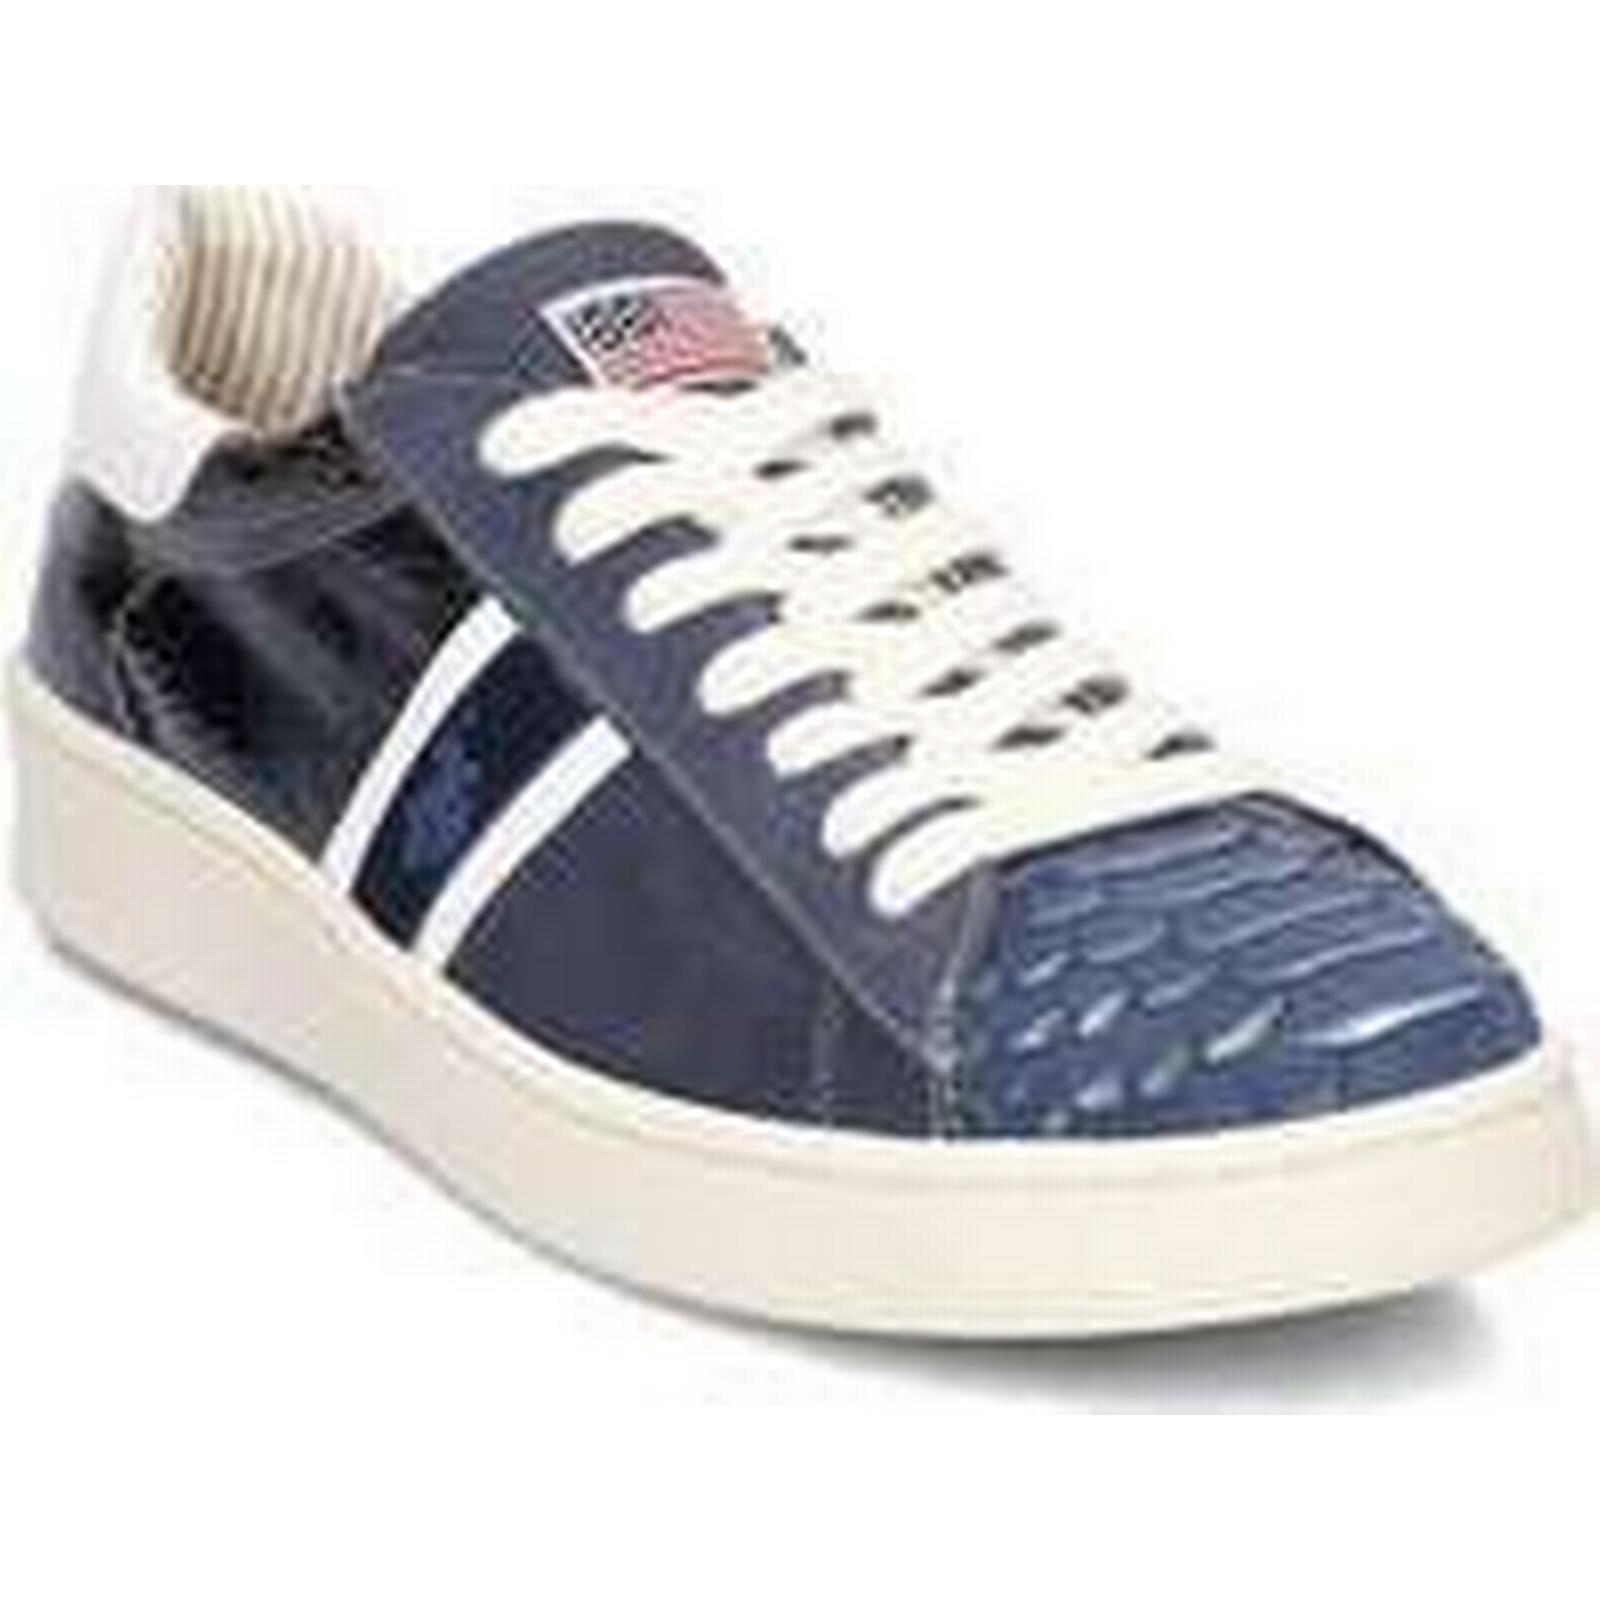 Spartoo.co.uk U.S Polo Assn. ERYN4189S8SY3NAVY multicolour women's Shoes (Trainers) in multicolour ERYN4189S8SY3NAVY a4b580